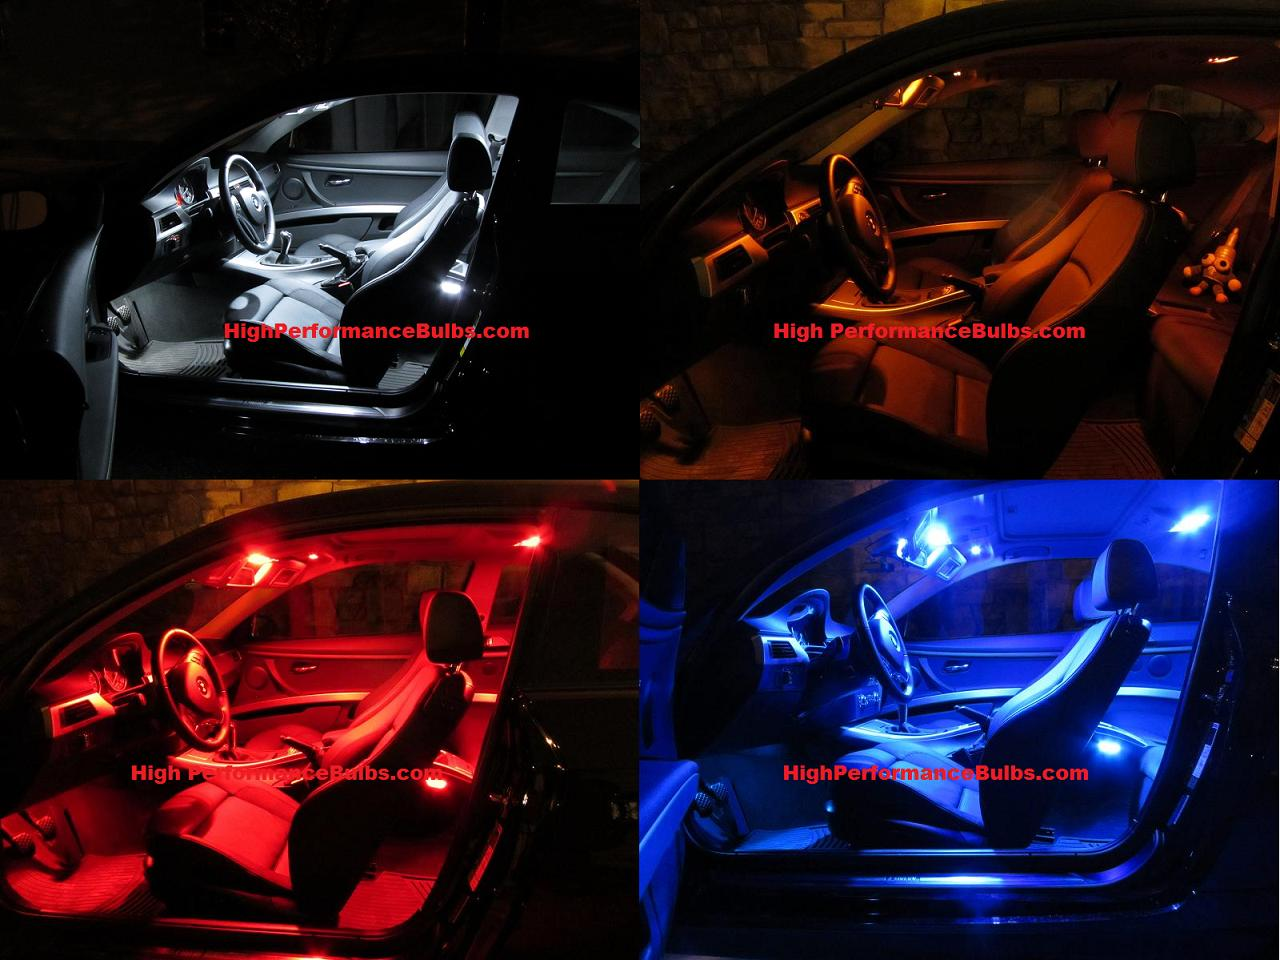 Attractive HPB Offers Their Interior Kits In Red, Amber, Blue And White.